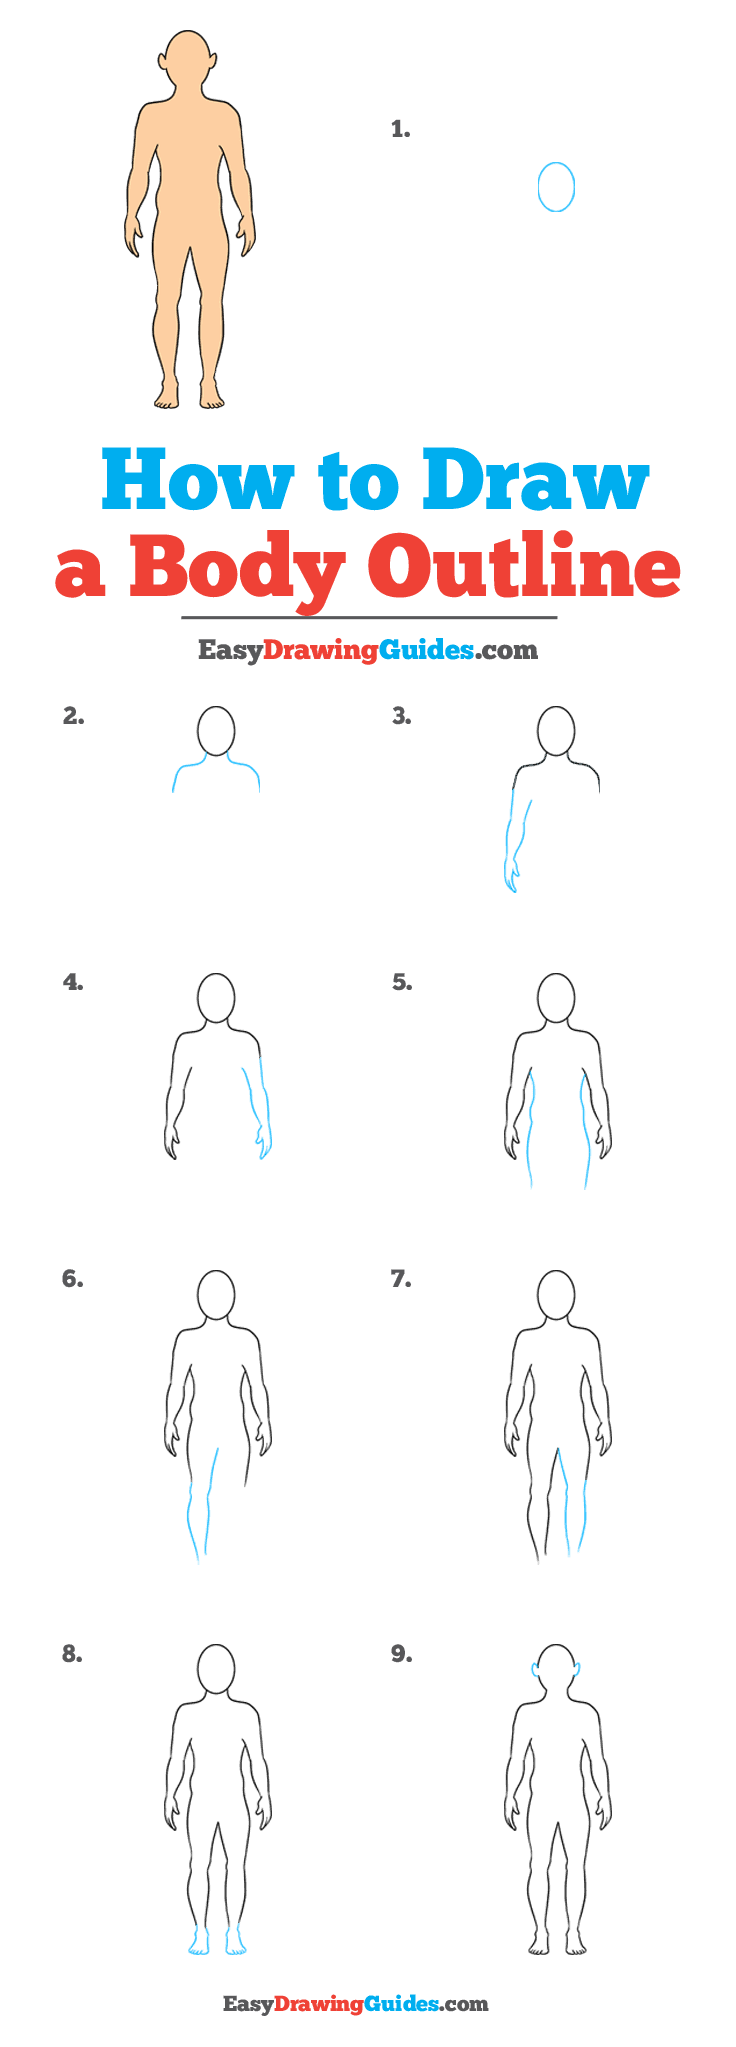 How to Draw Body Outline